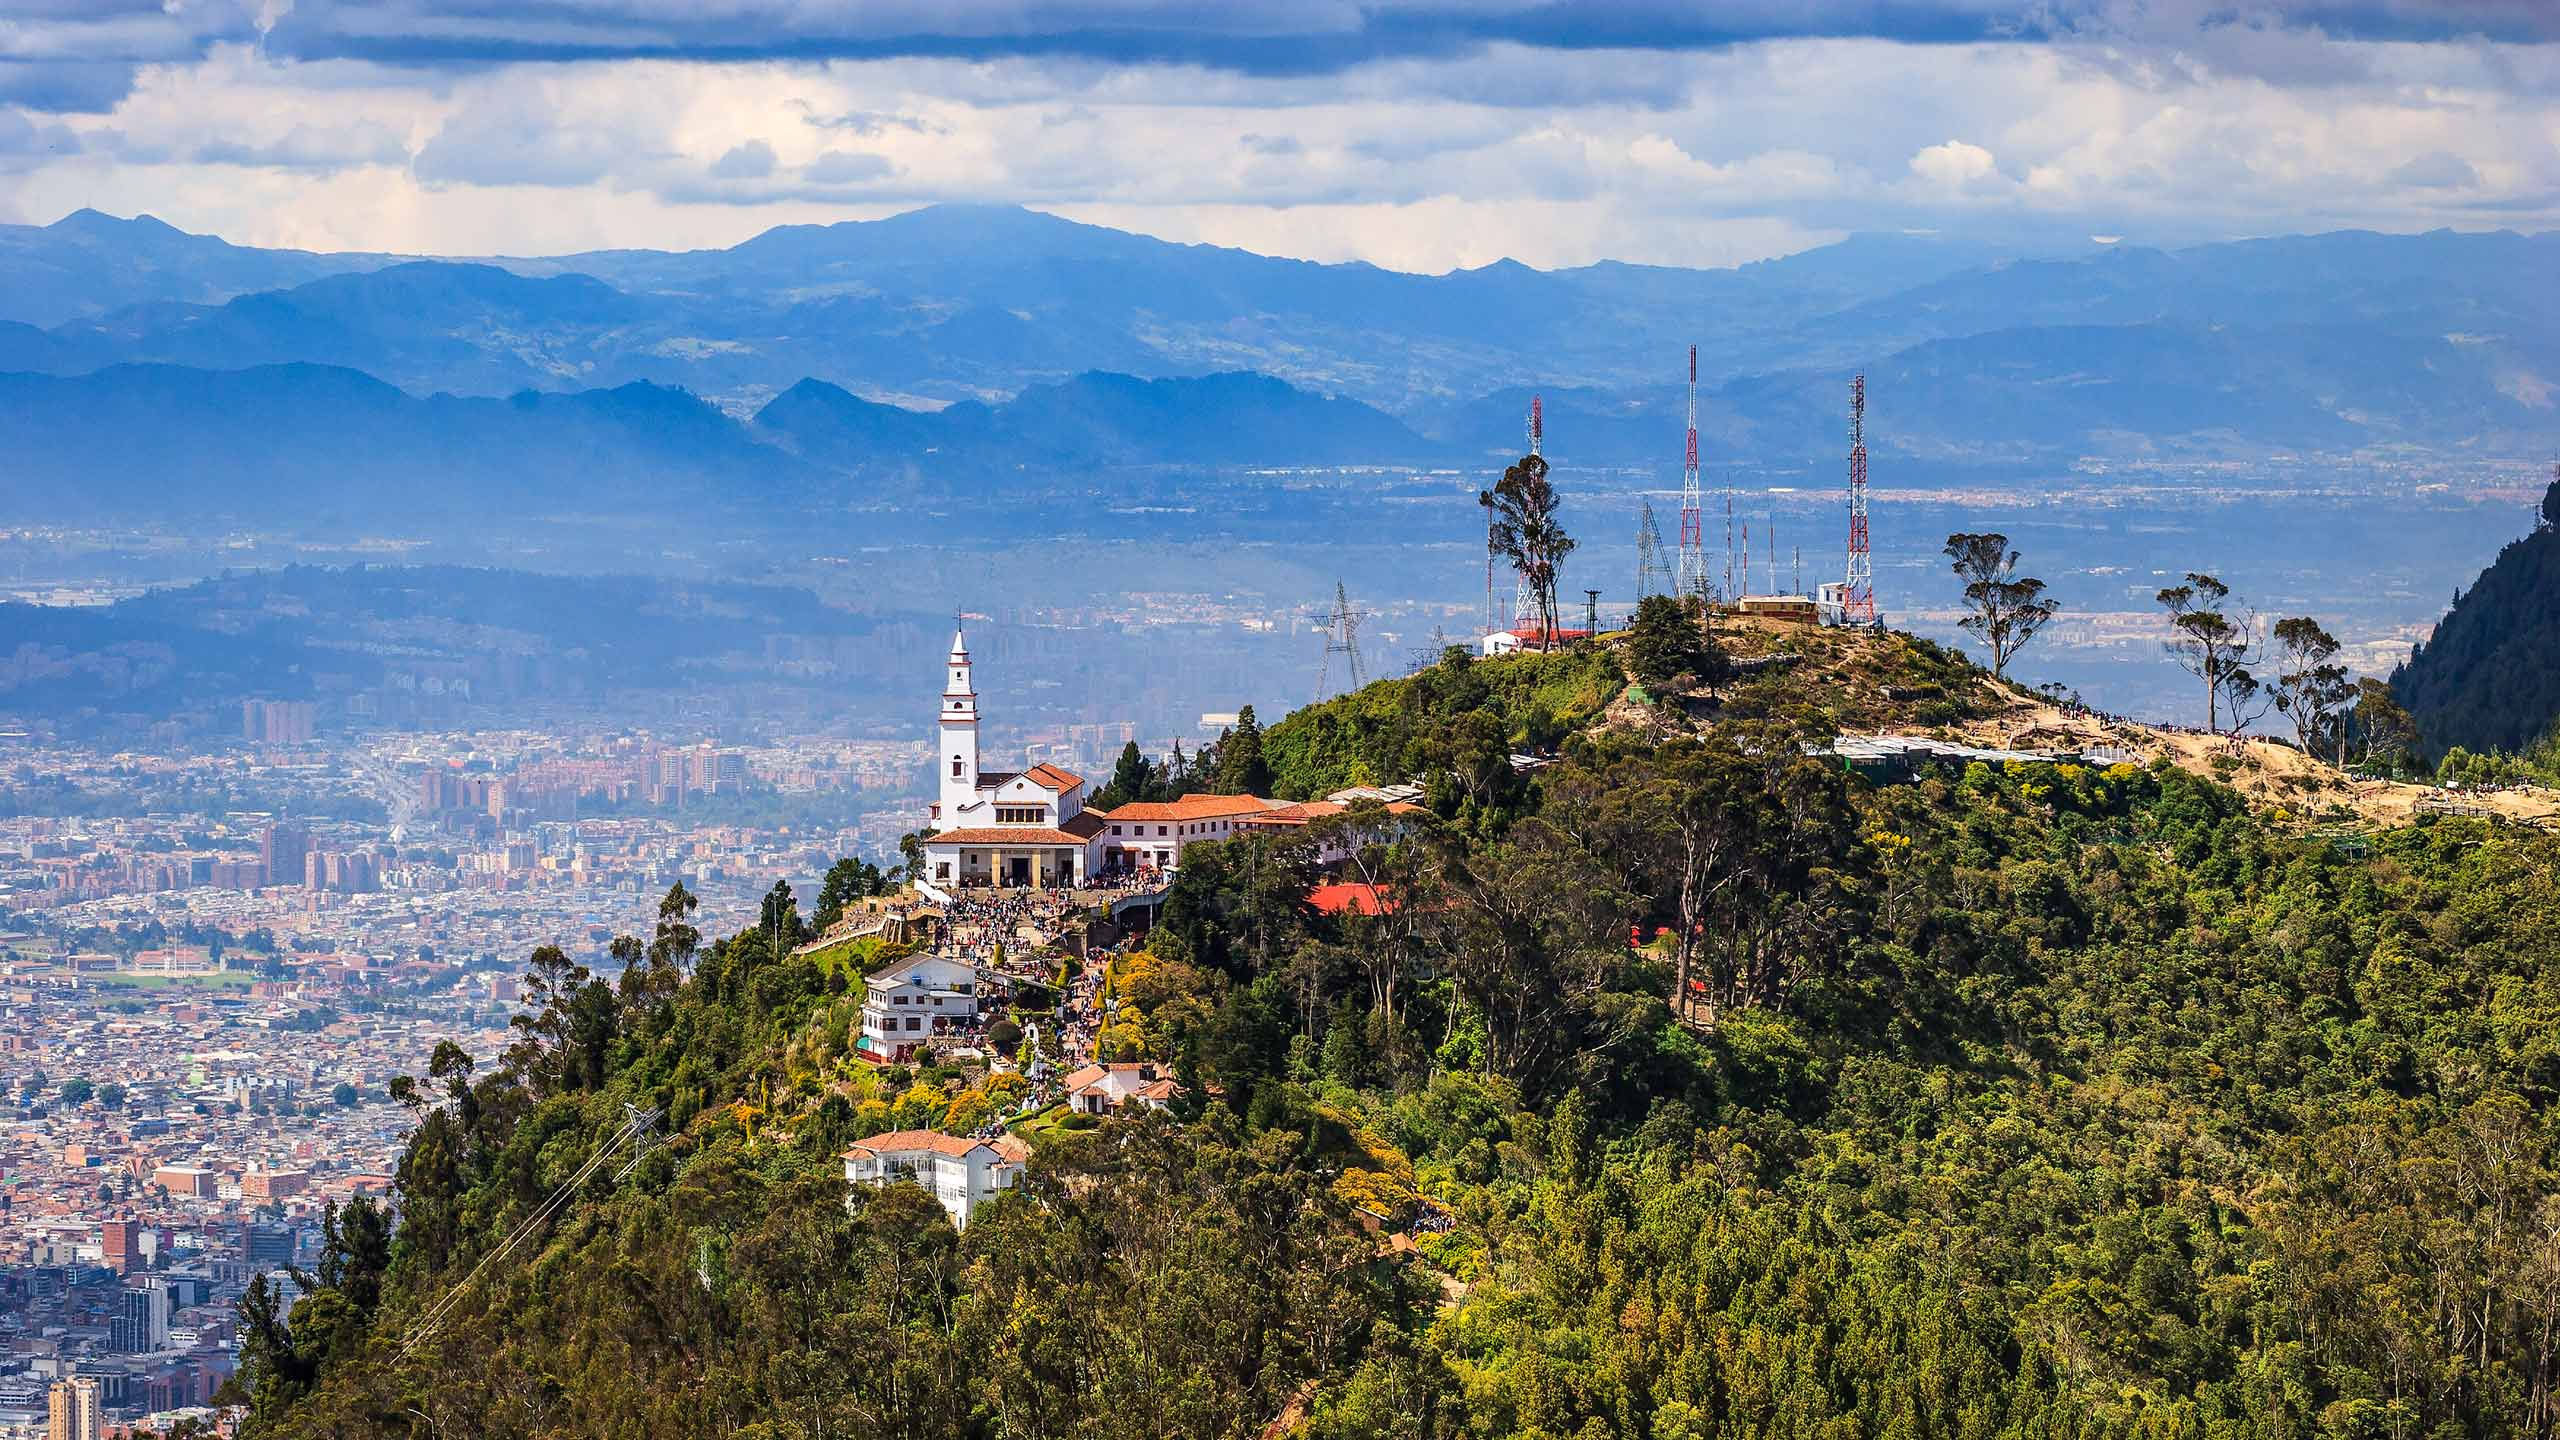 Bogotá, Colombia - Looking To The Andes Peak Of Monserrate And Beyond From Guadalupe; The Church On The Peak Is Cleary Visible.